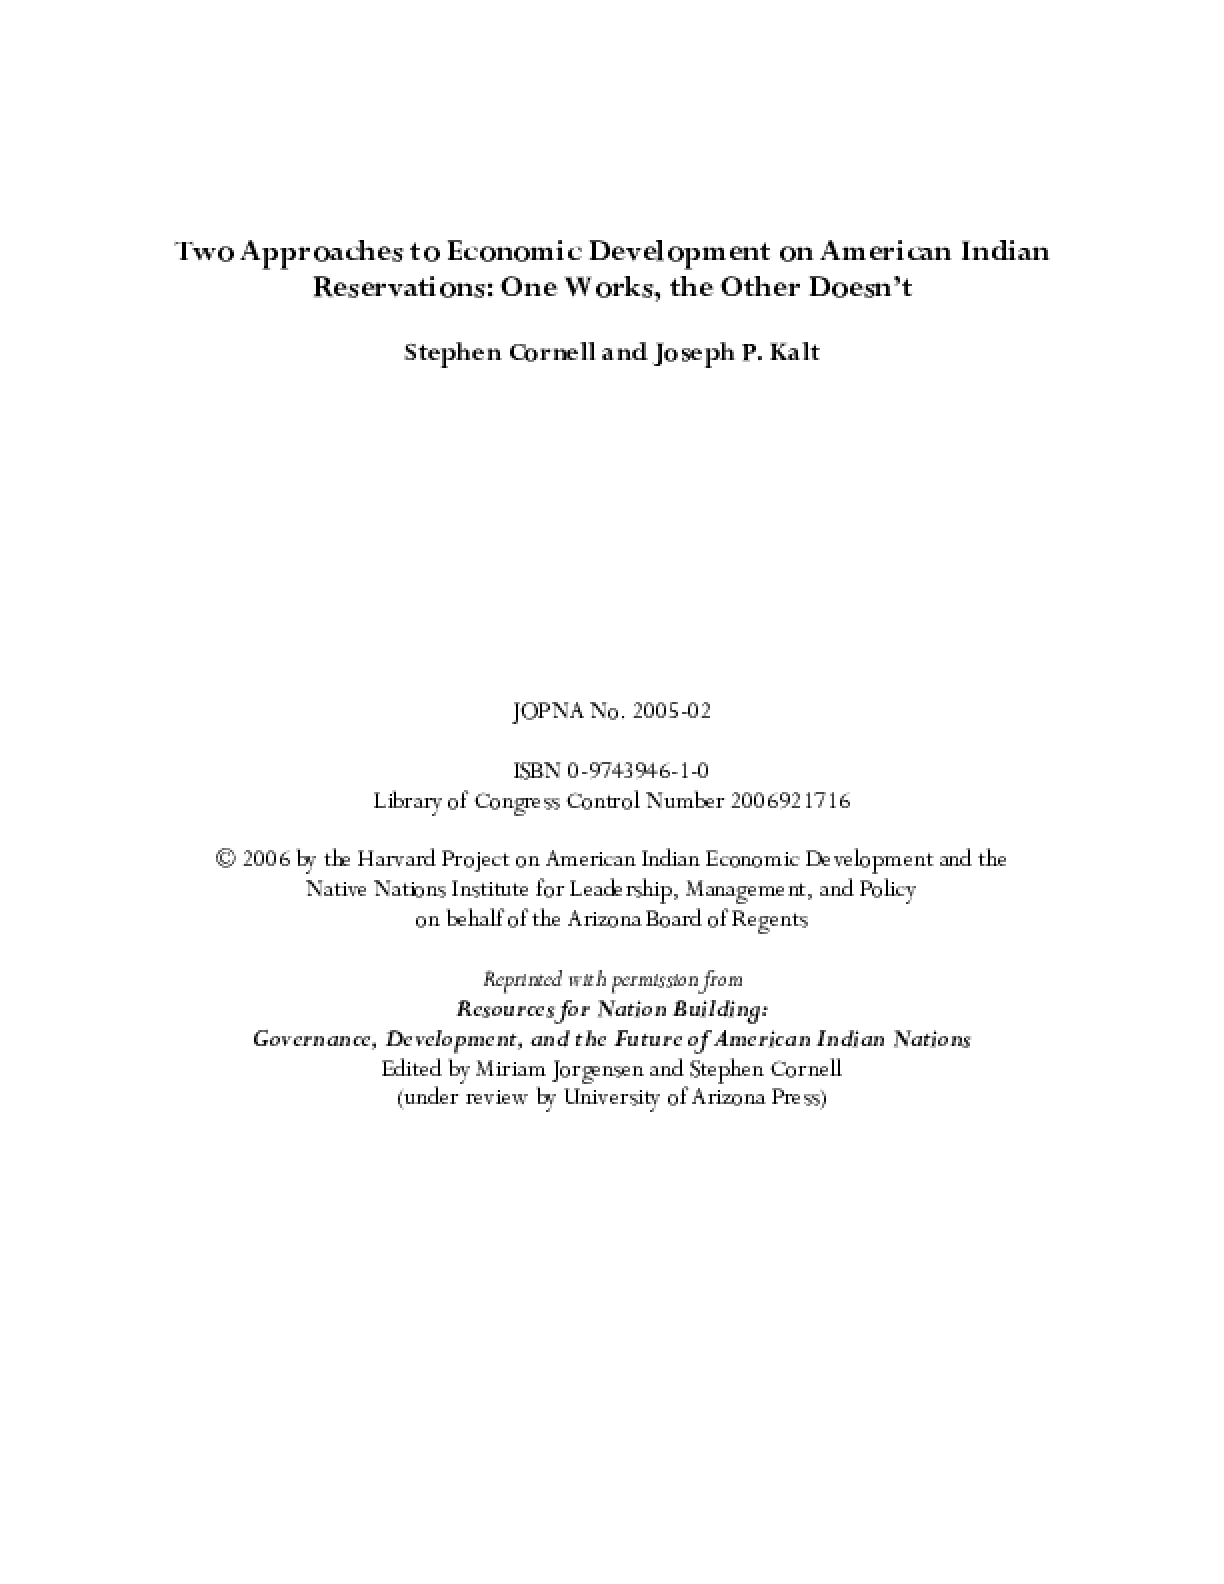 Two Approaches to Economic Development on American Indian Reservations: One Works, the Other Doesn't